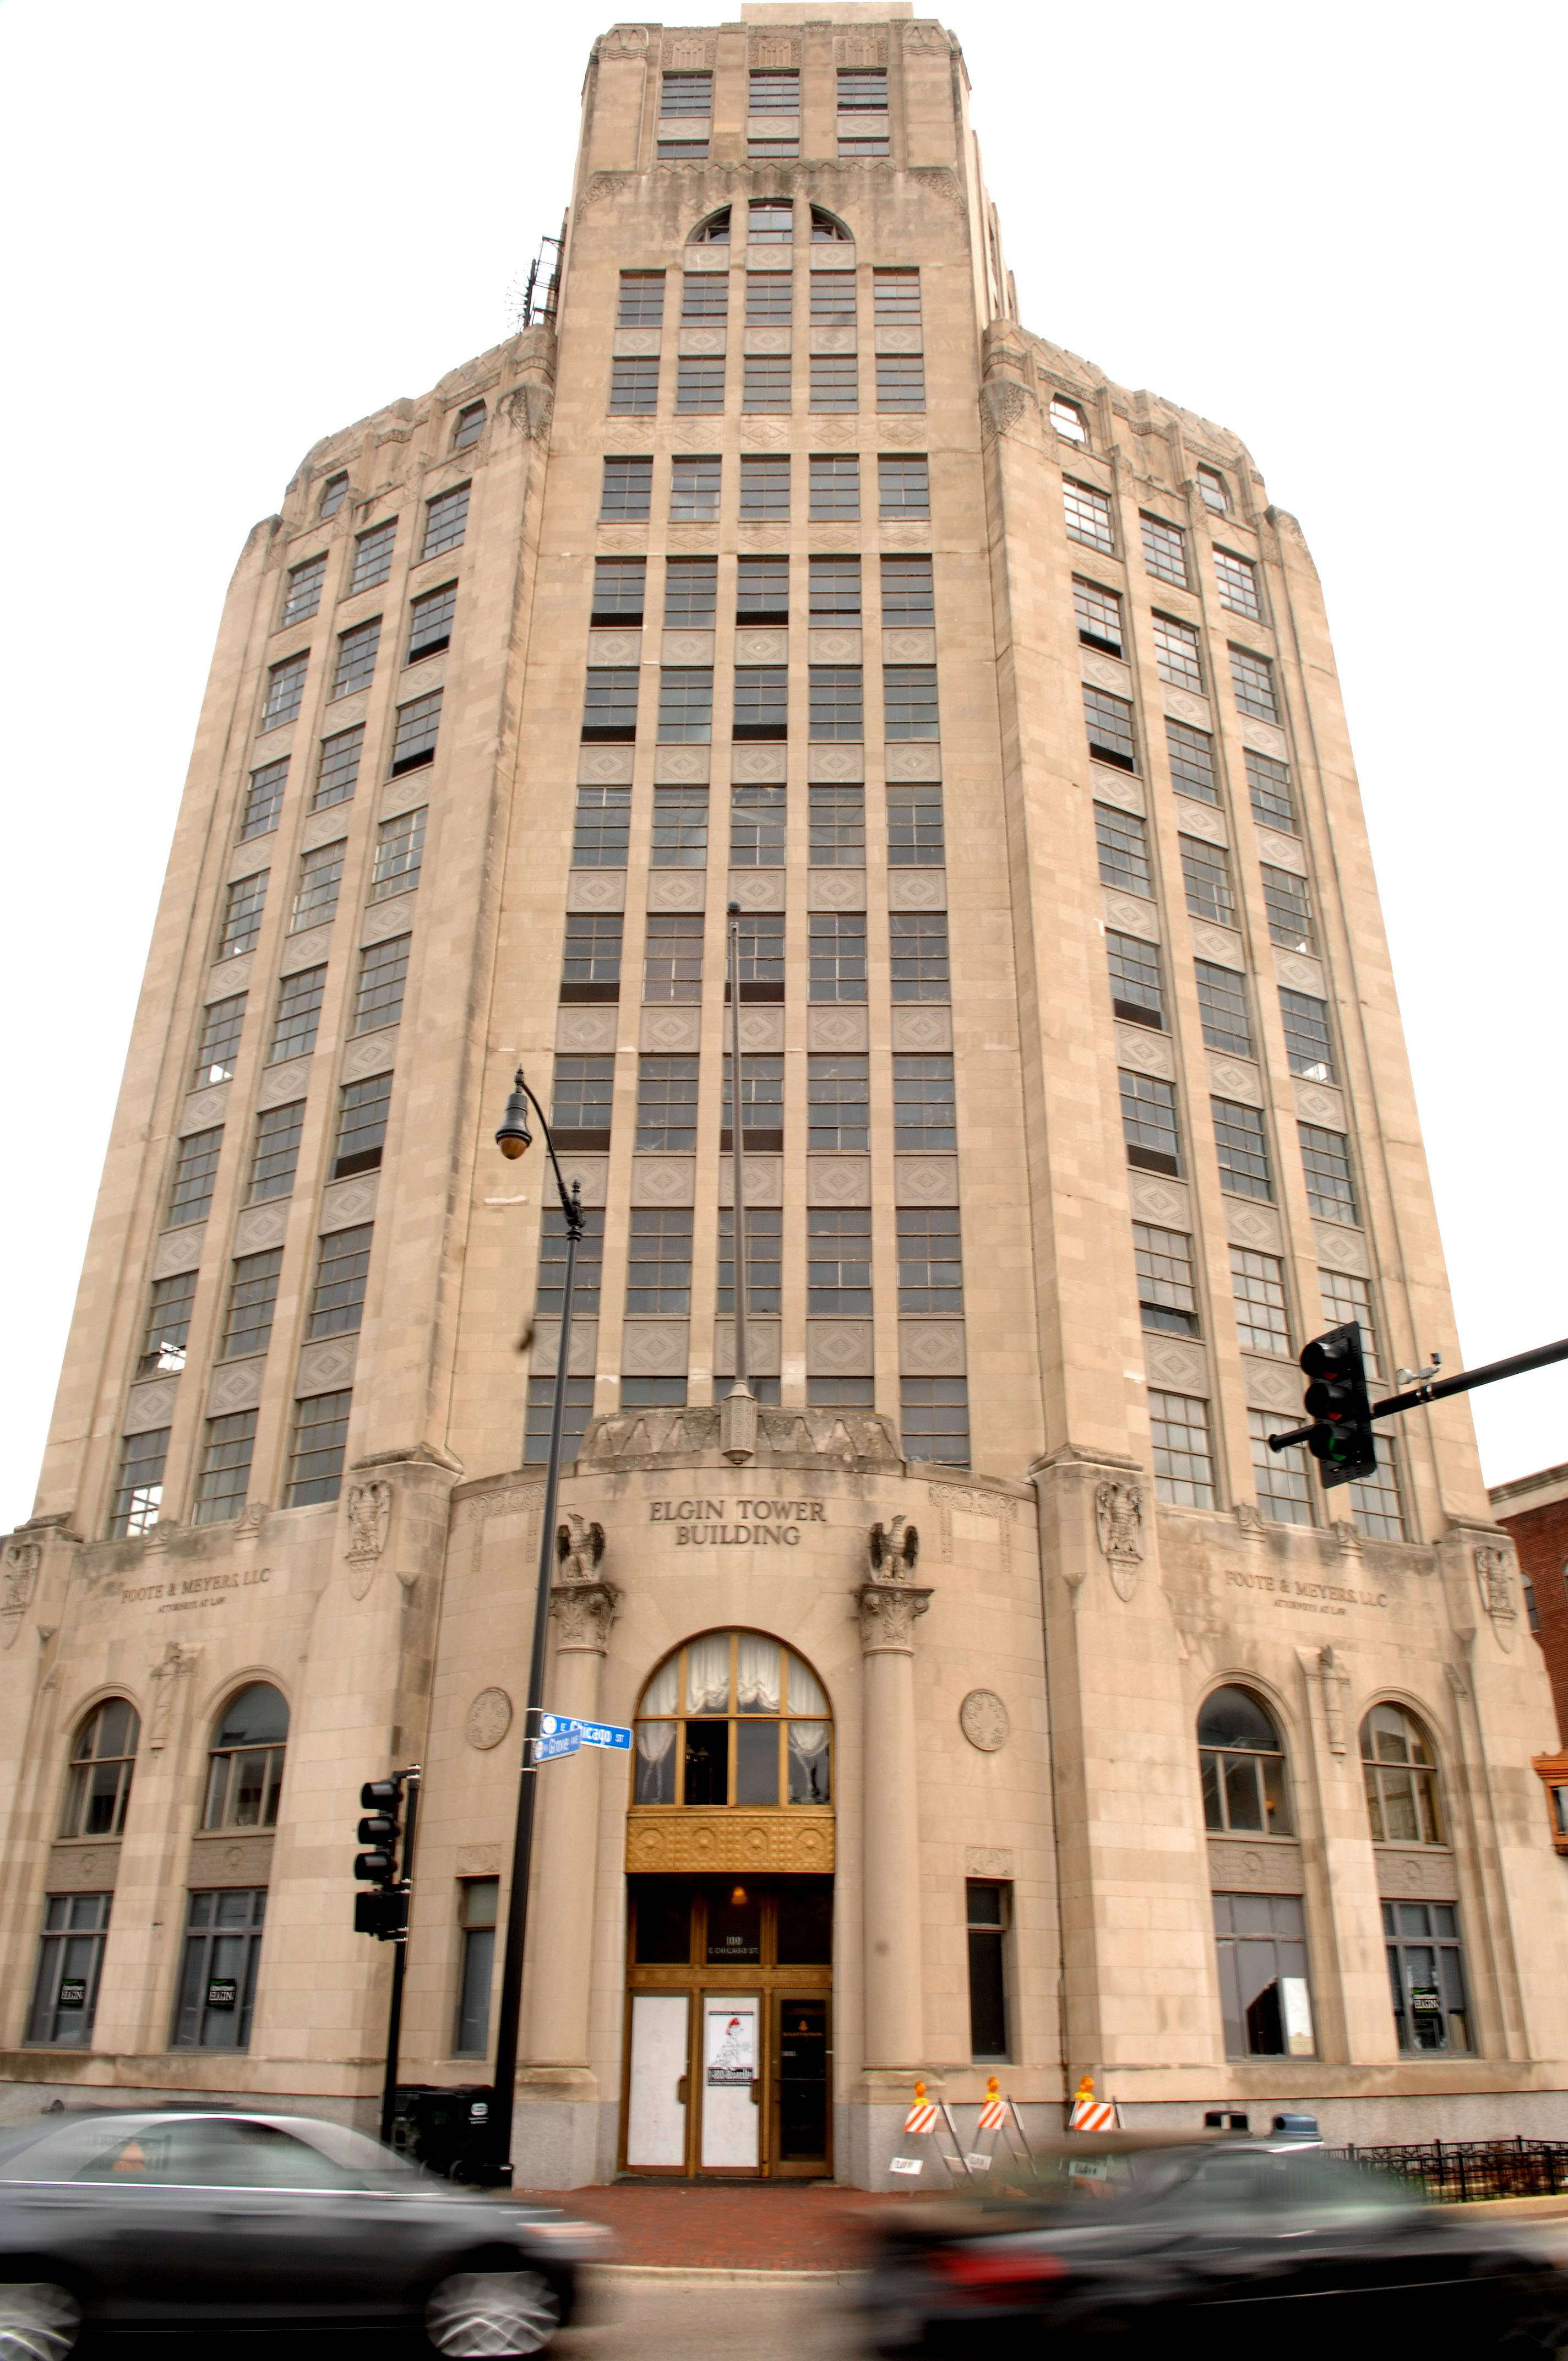 Arson is suspected in a fire Sunday at the Elgin Tower Building, the building manager said. The glass front door was broken to gain access to the building, and items including a garbage can were on fire inside the elevator, fire officials said.